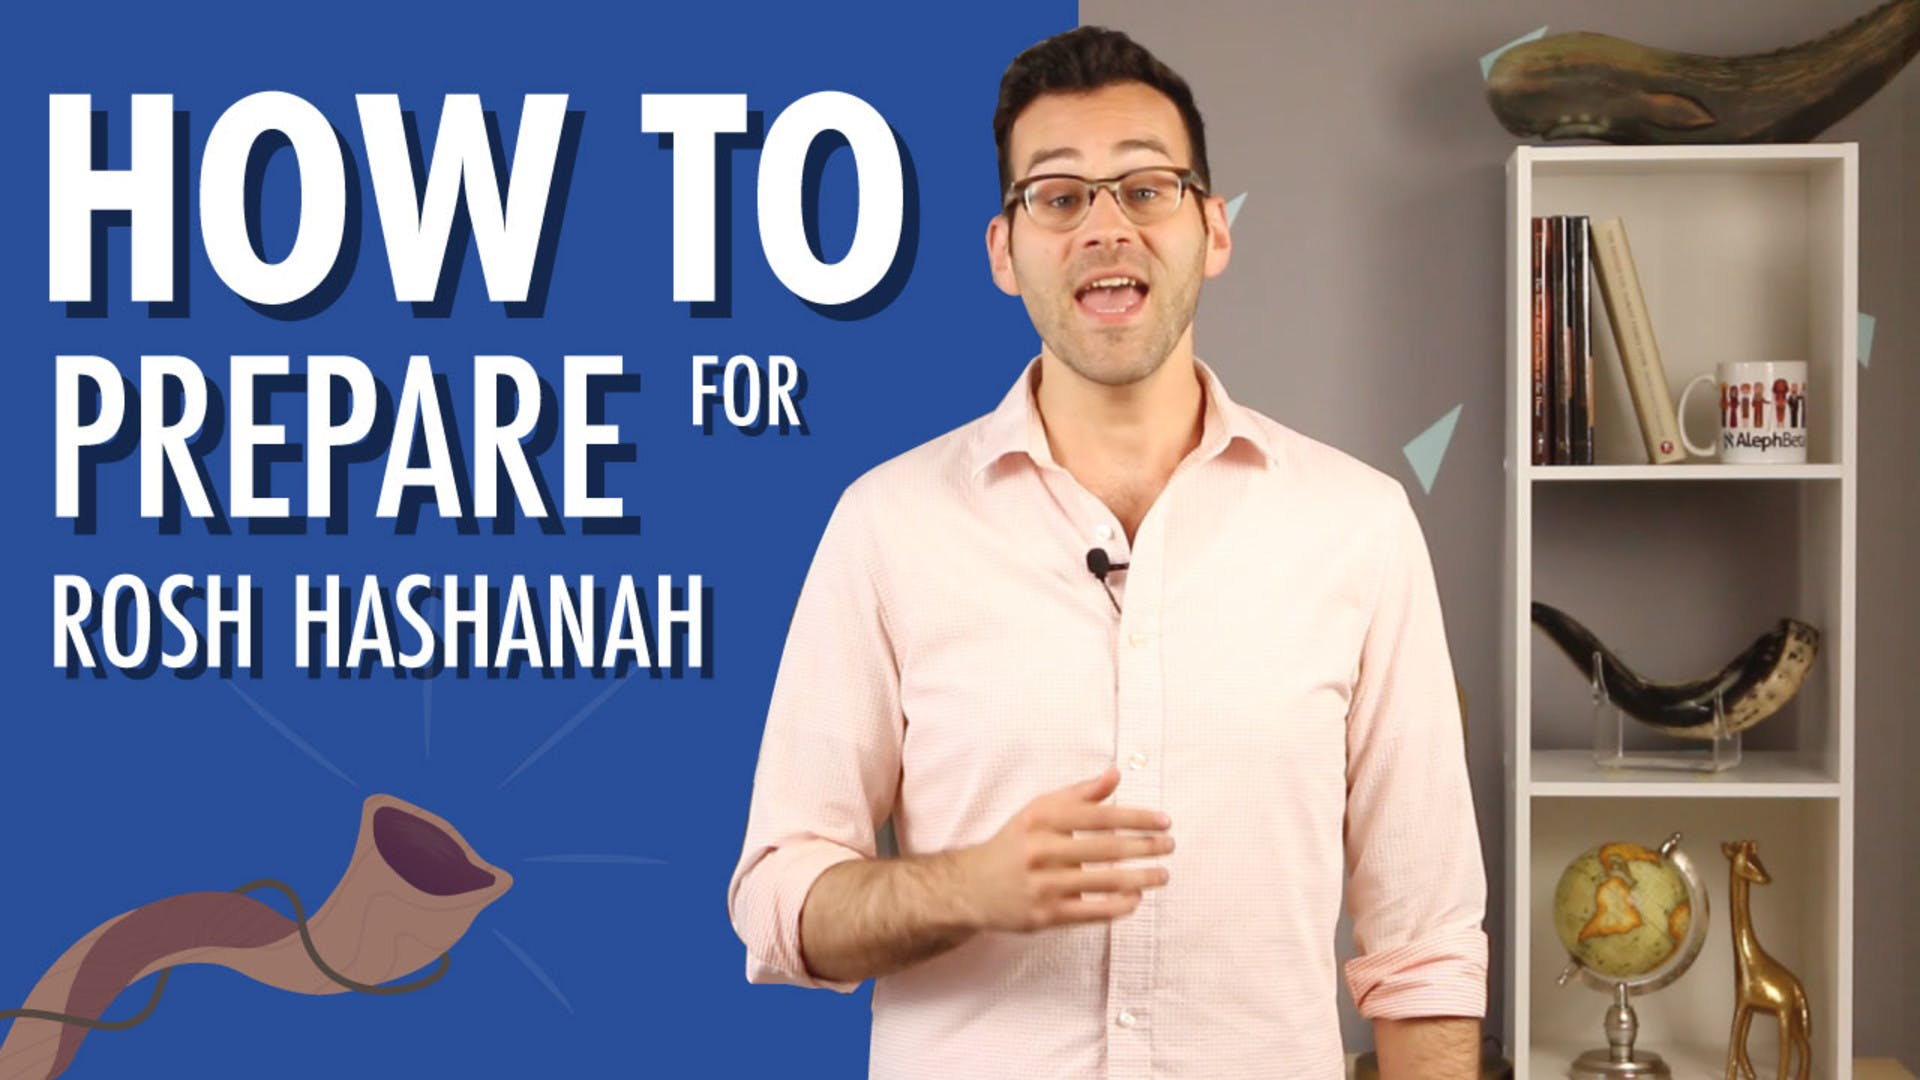 How to prepare for Rosh Hashanah